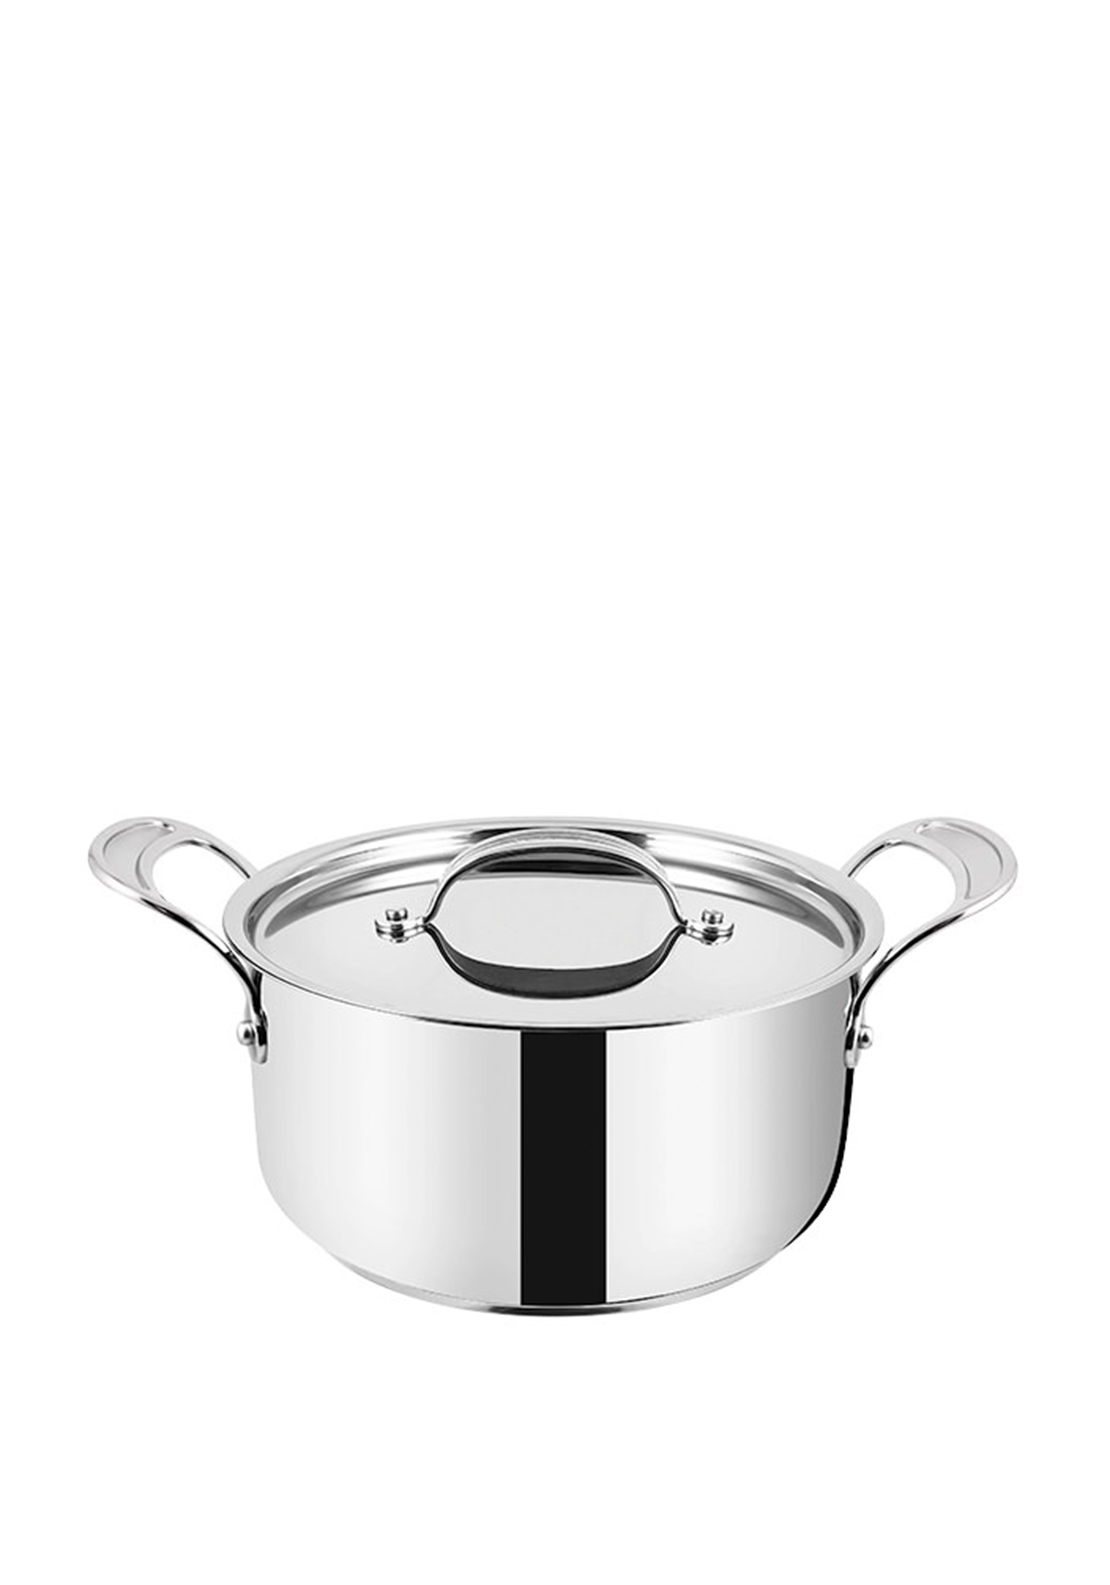 Jamie Oliver Stainless Steel Stew pot with Lid